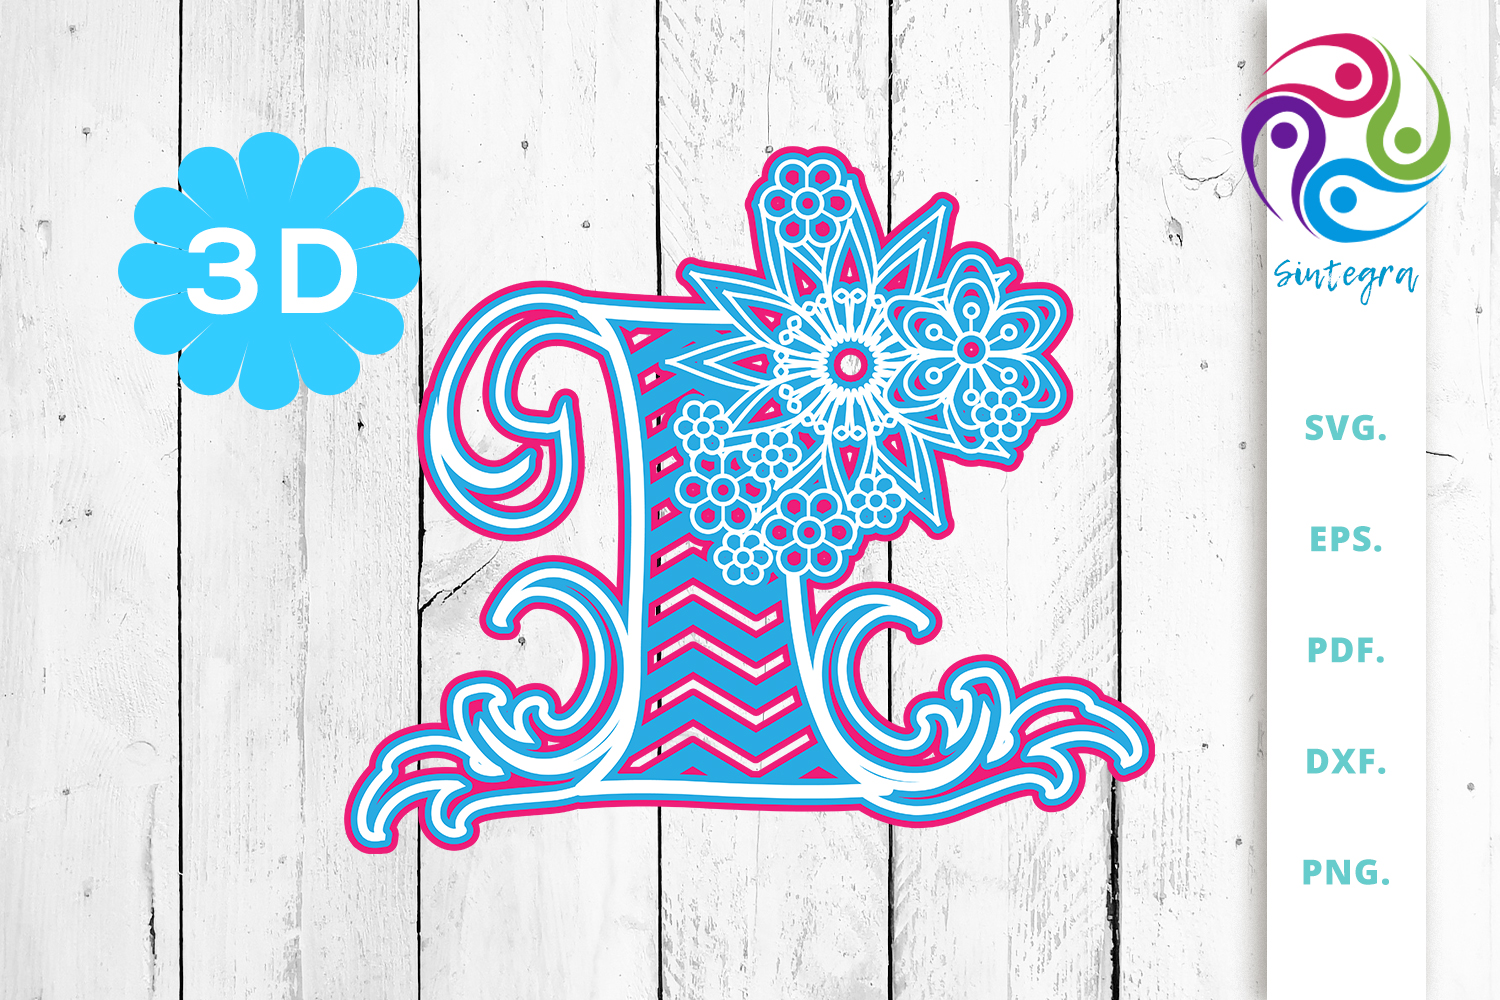 Download Free 3d Multilayer Floral Chevron Letter I Graphic By Sintegra for Cricut Explore, Silhouette and other cutting machines.